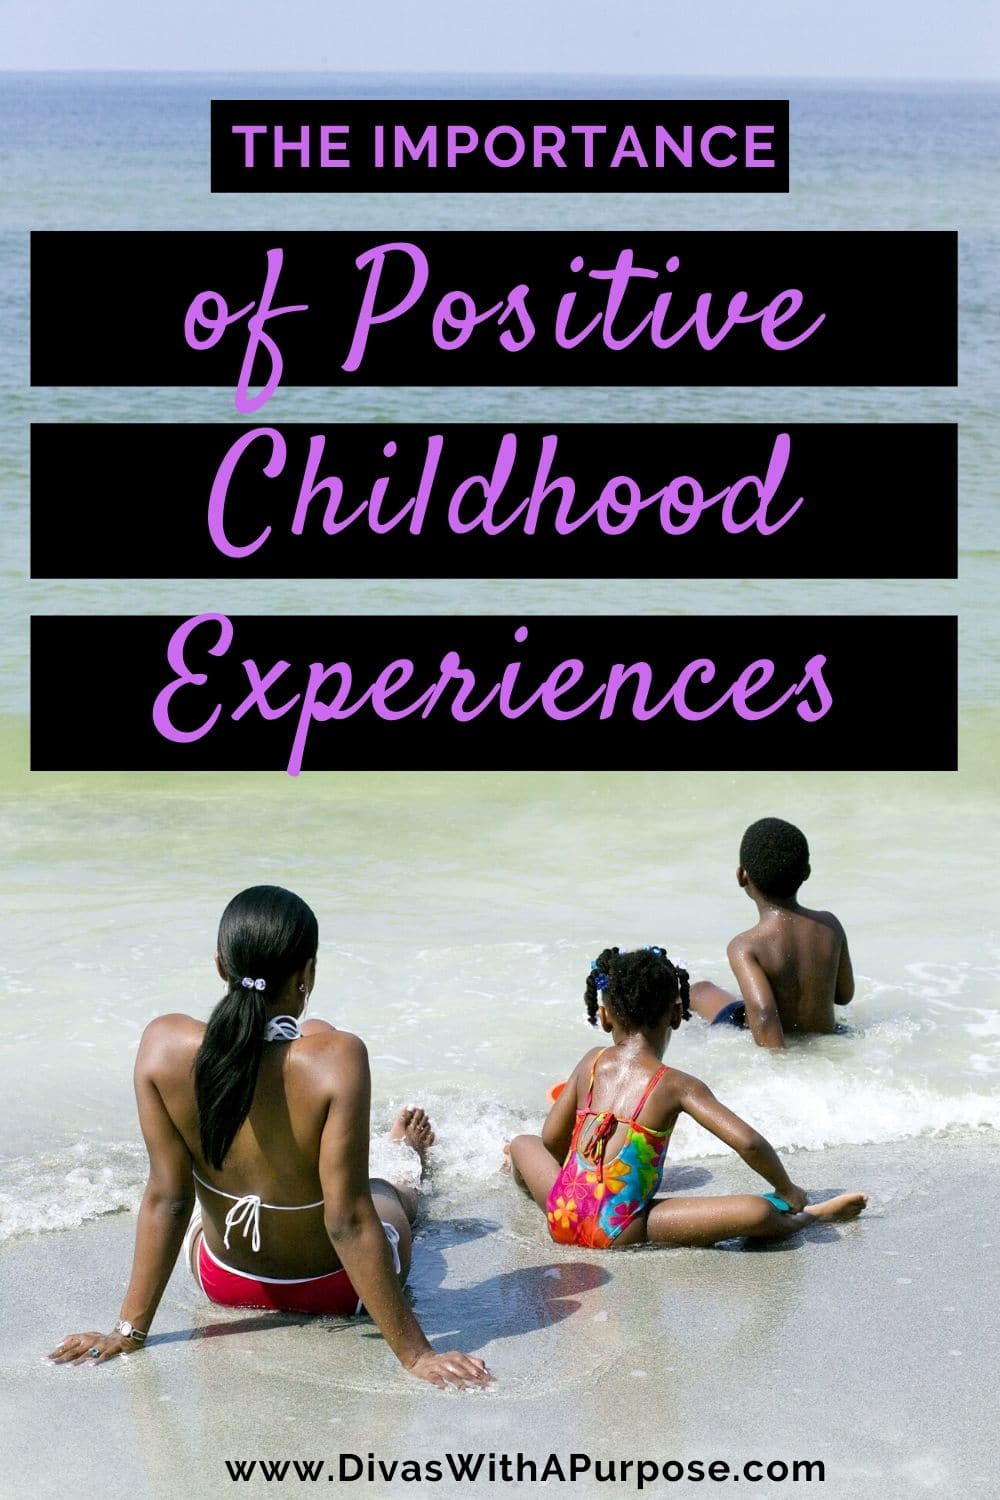 The Importance of Positive Childhood Relationships and Experiences in preventing Adverse Childhood Experiences (ACEs) | #ad #preventACEs #findyour3